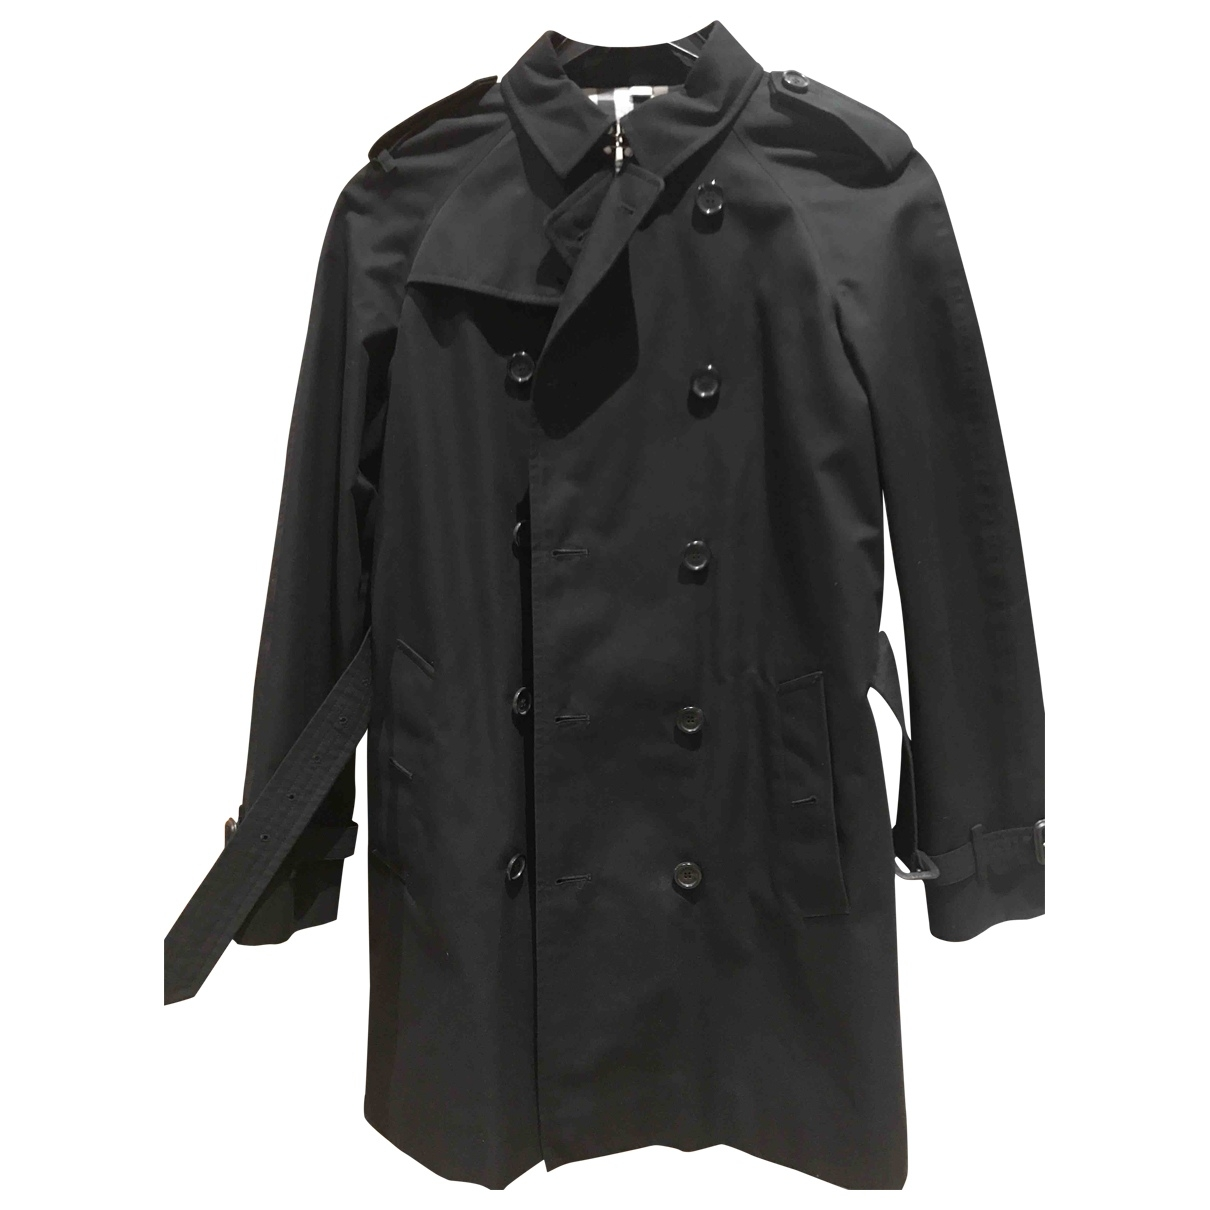 Burberry \N Black Cotton jacket & coat for Kids 14 years - S FR